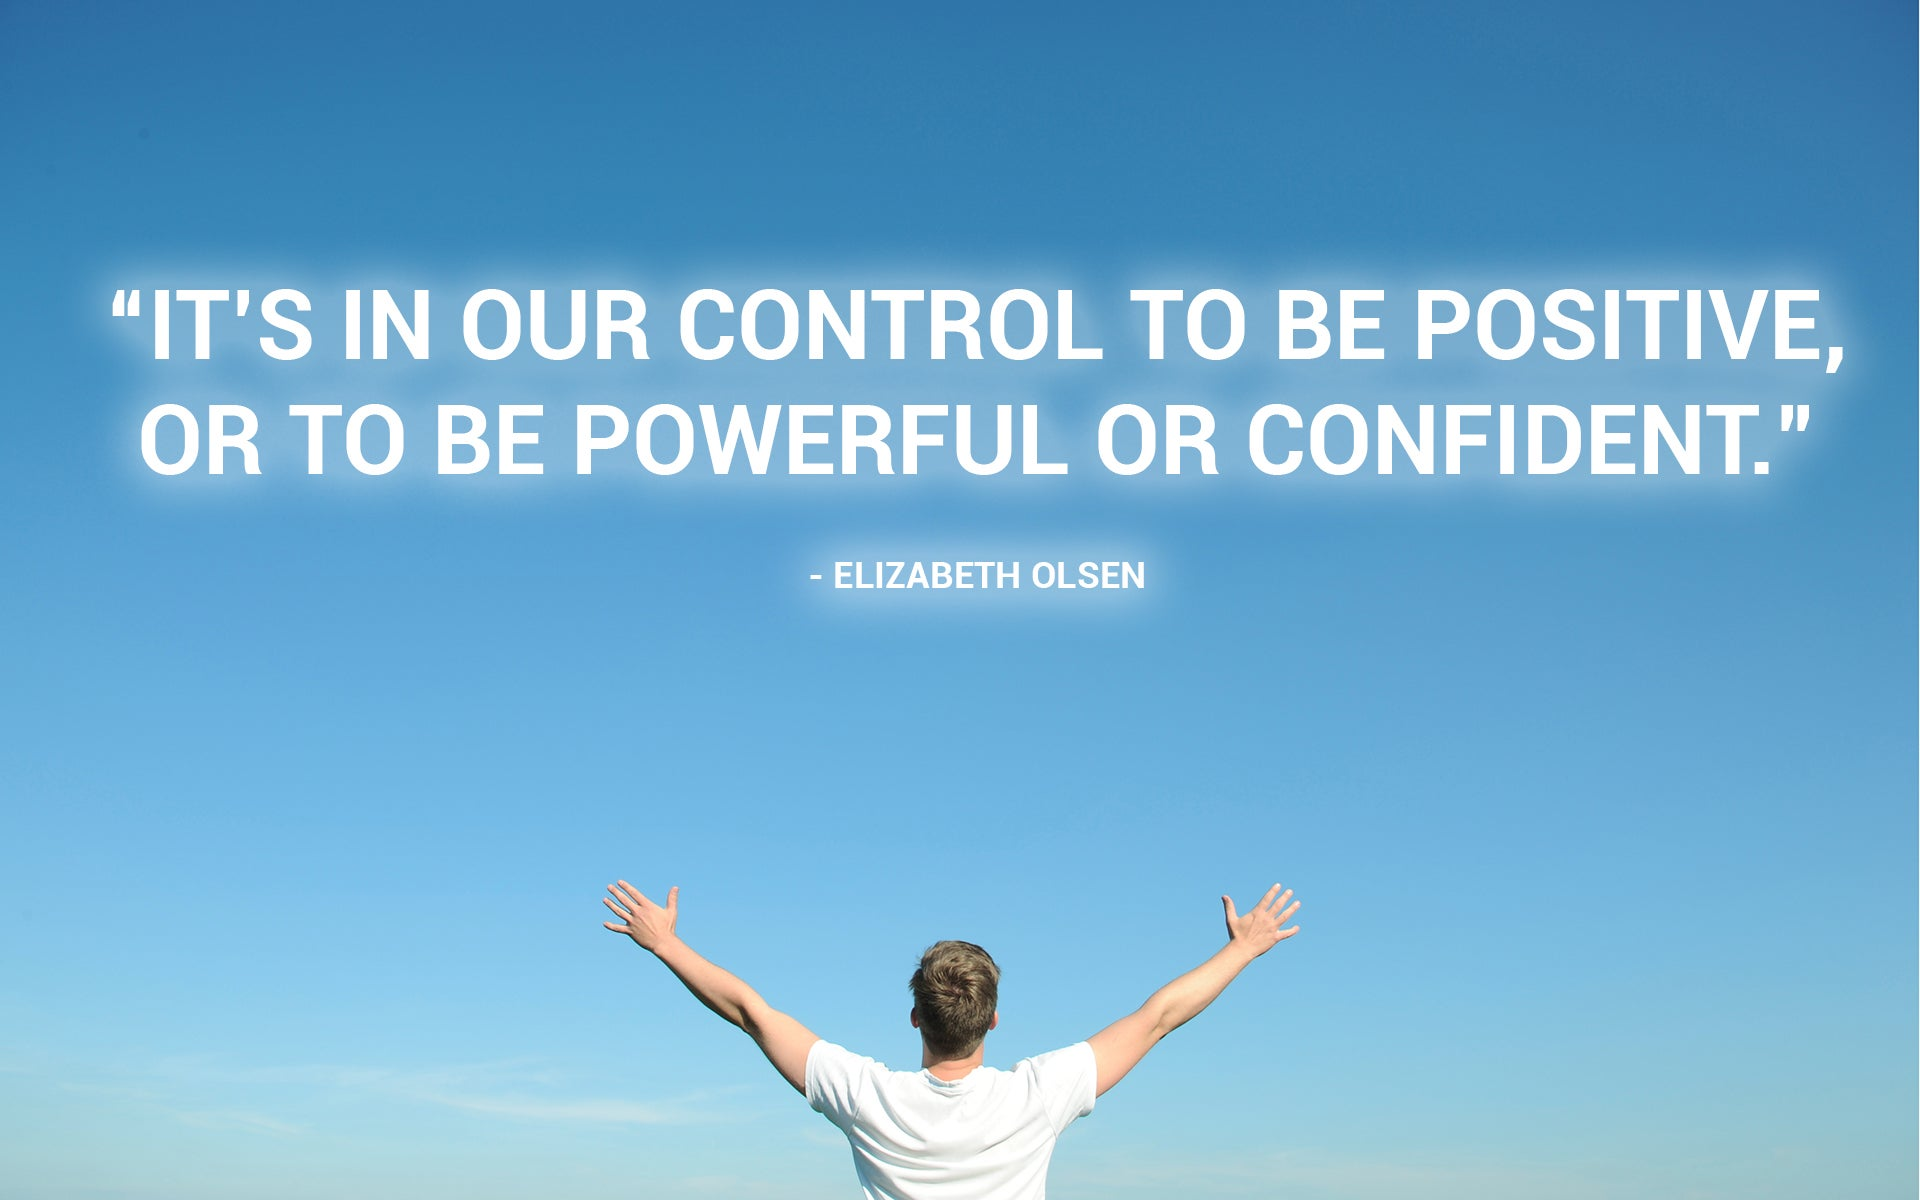 'It's In Our Control To Be Positive, Powerful Or Confident'